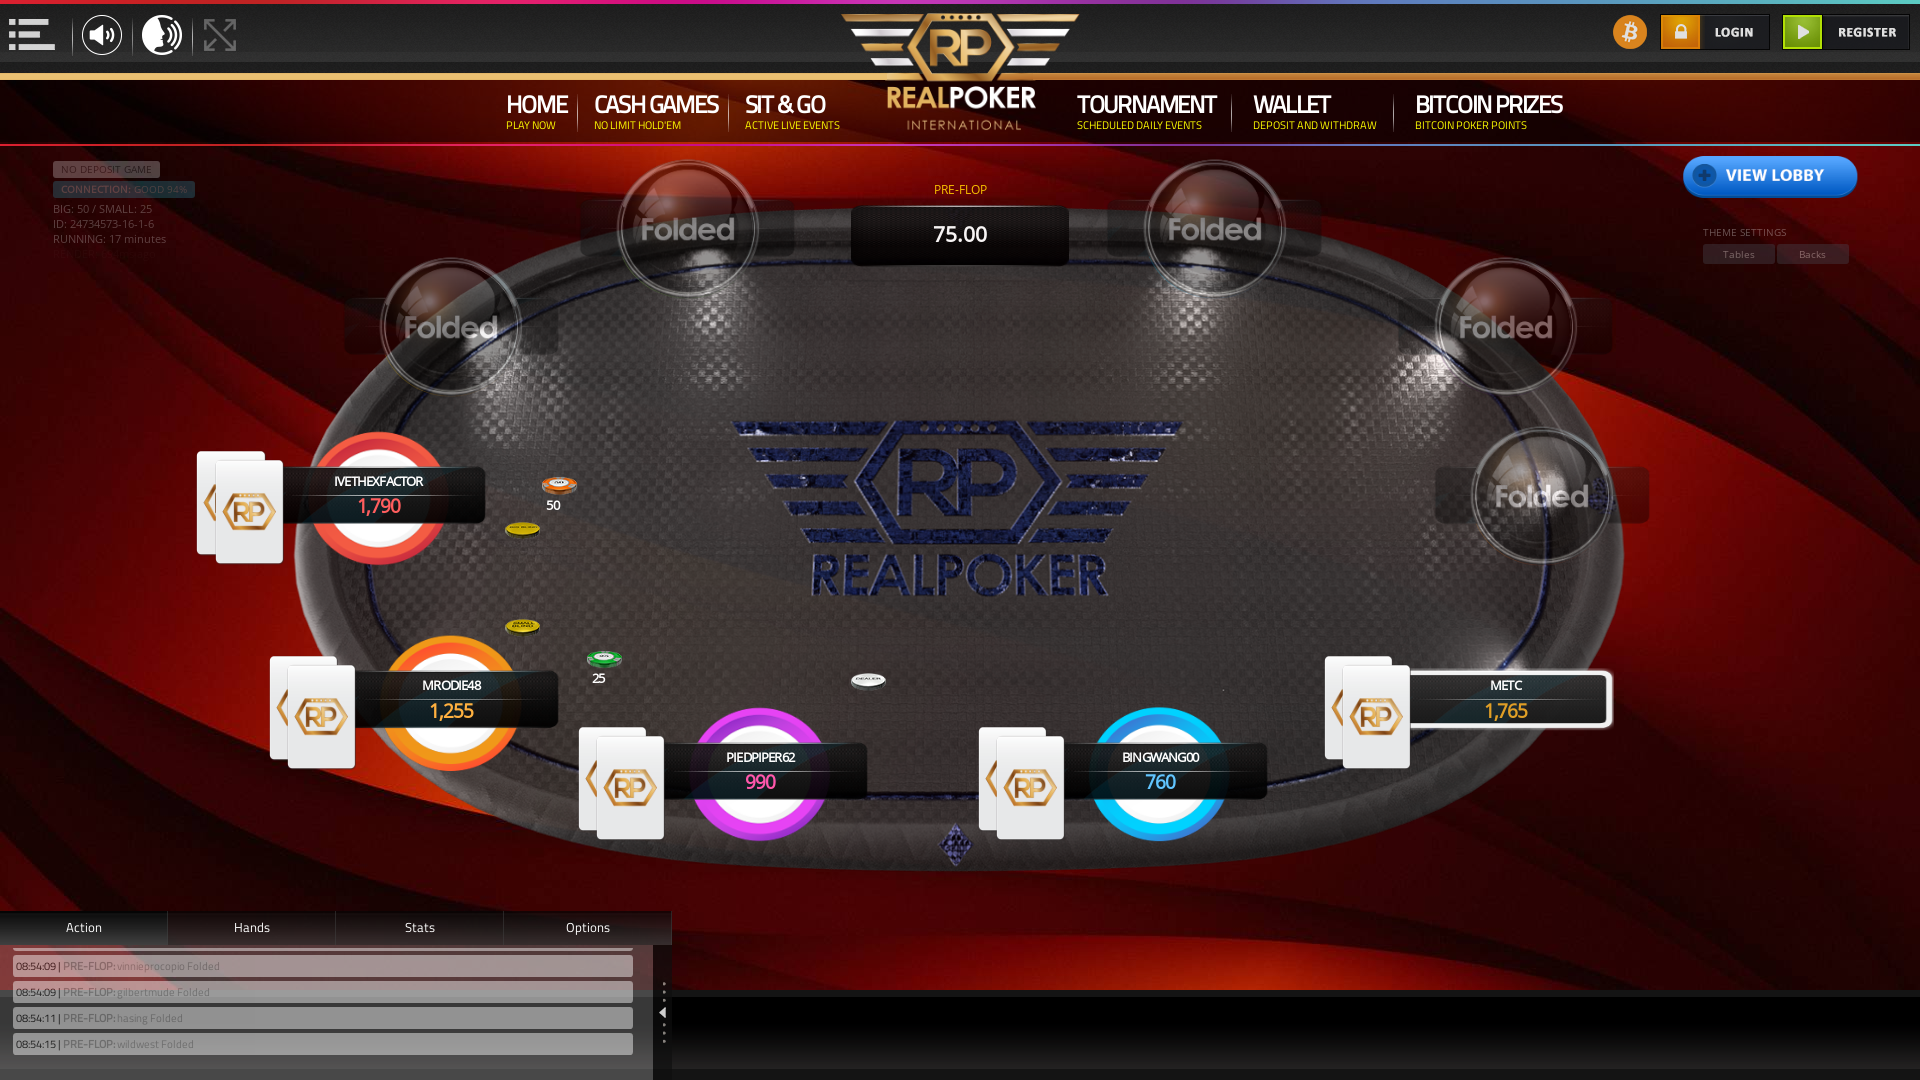 10 player texas holdem table at real poker with the table id 24734573